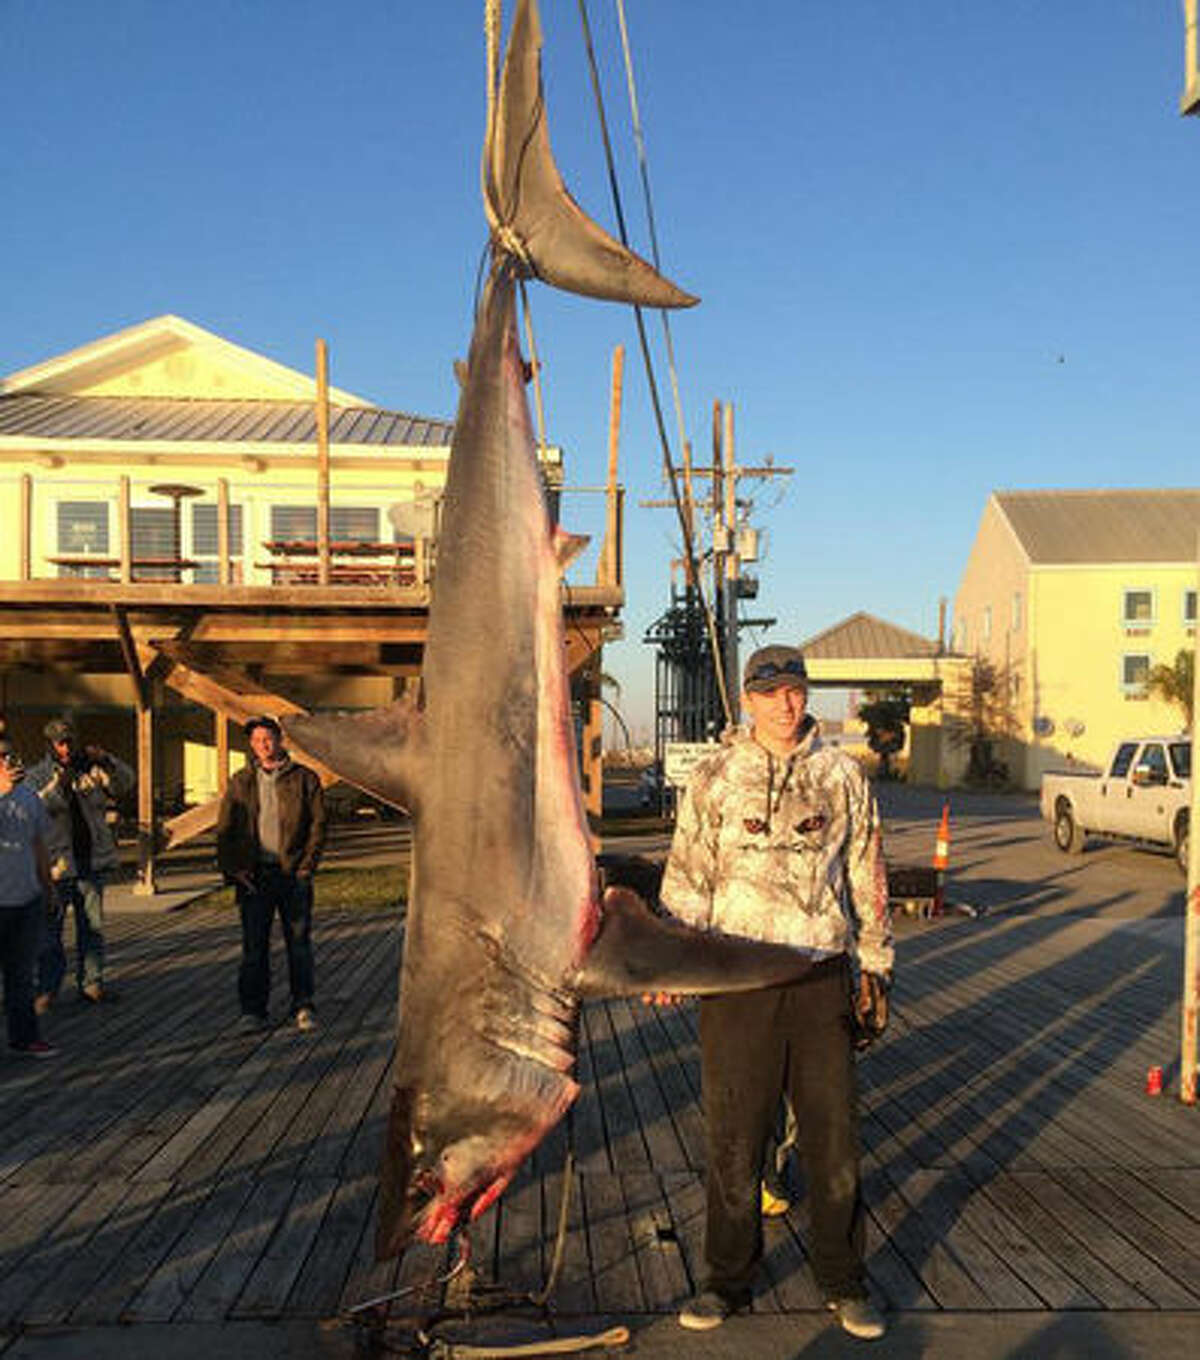 This 580 pound mako was caught on a fishing charter out of Venice, Louisiana. Visitors had come all the way from North Dakota to fish in the Gulf of Mexico.